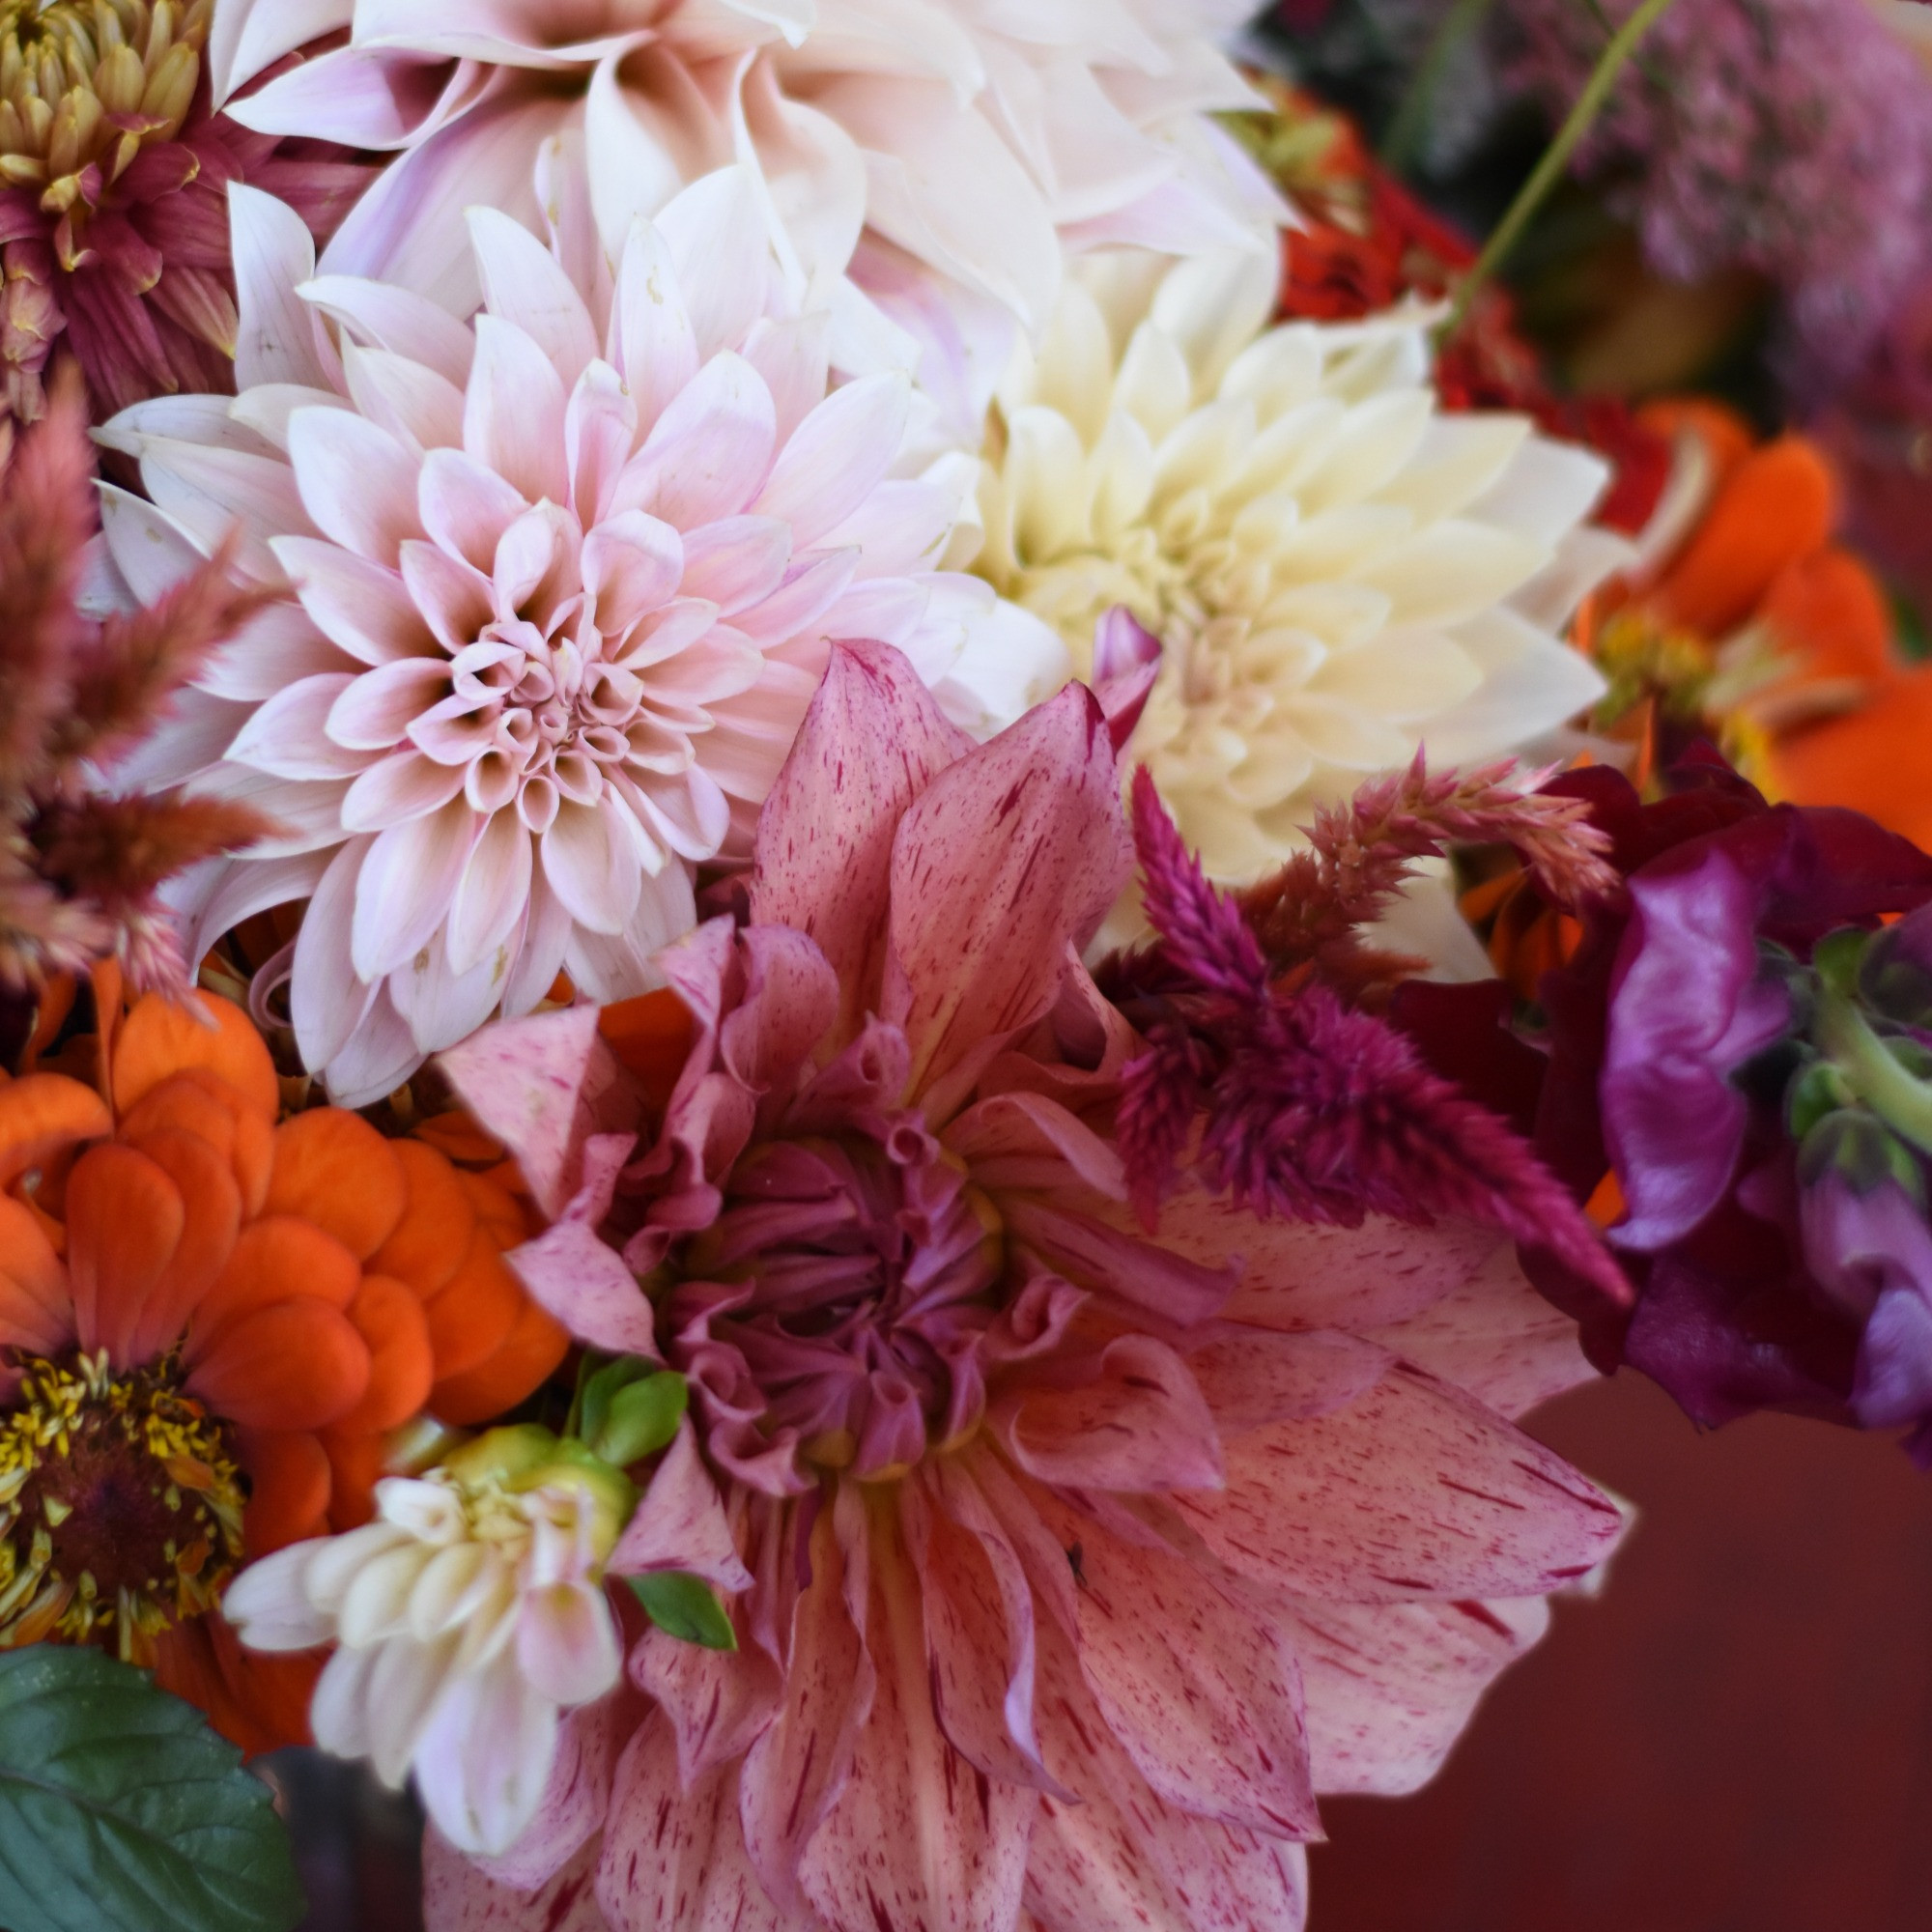 Hand-tied Bouquets Featuring Dahlias